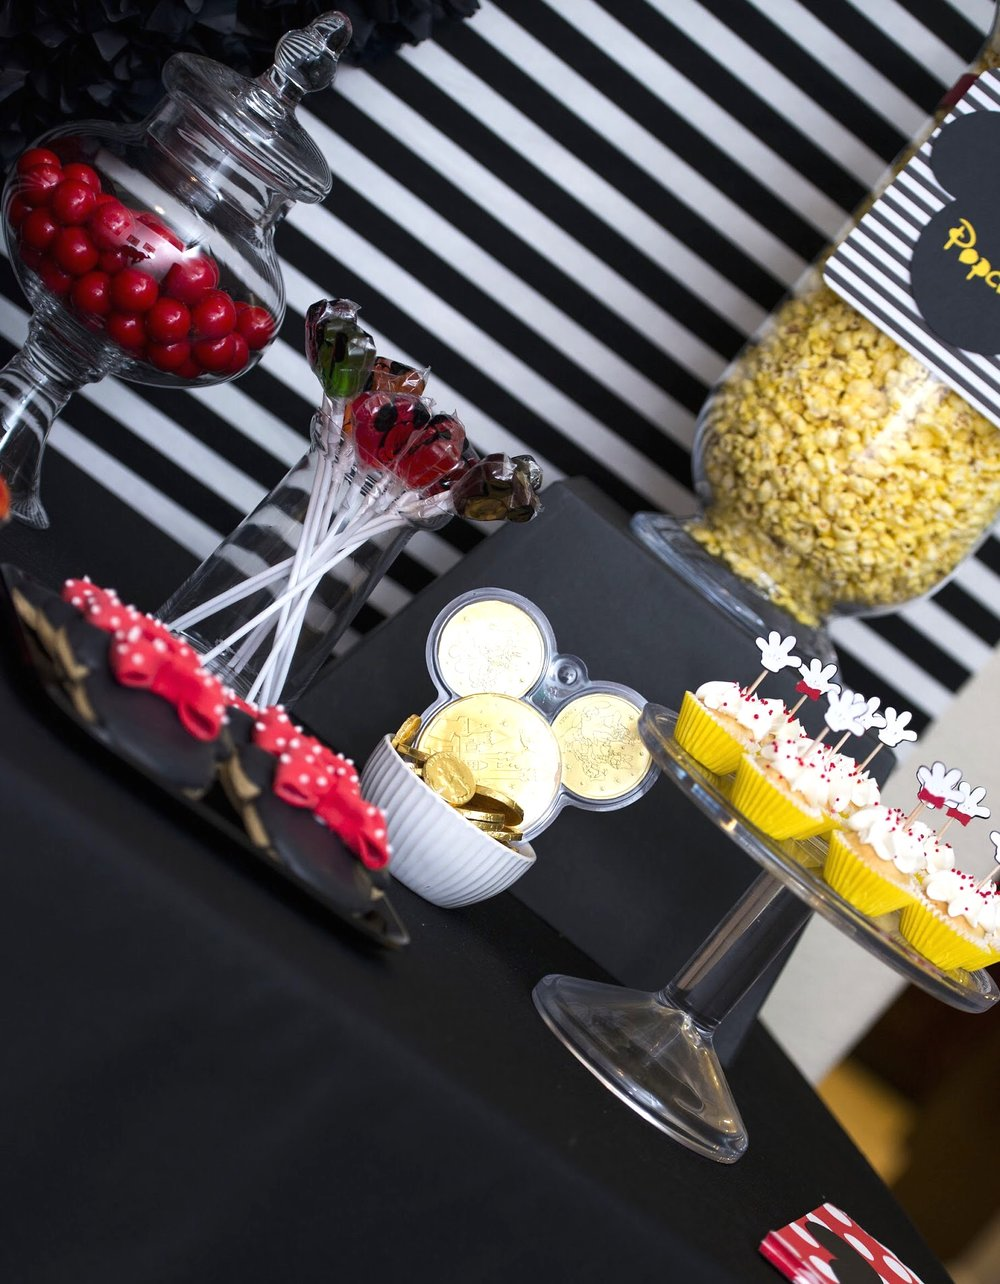 Disney Parks chocolate coins are a perfect addition to this dessert table!